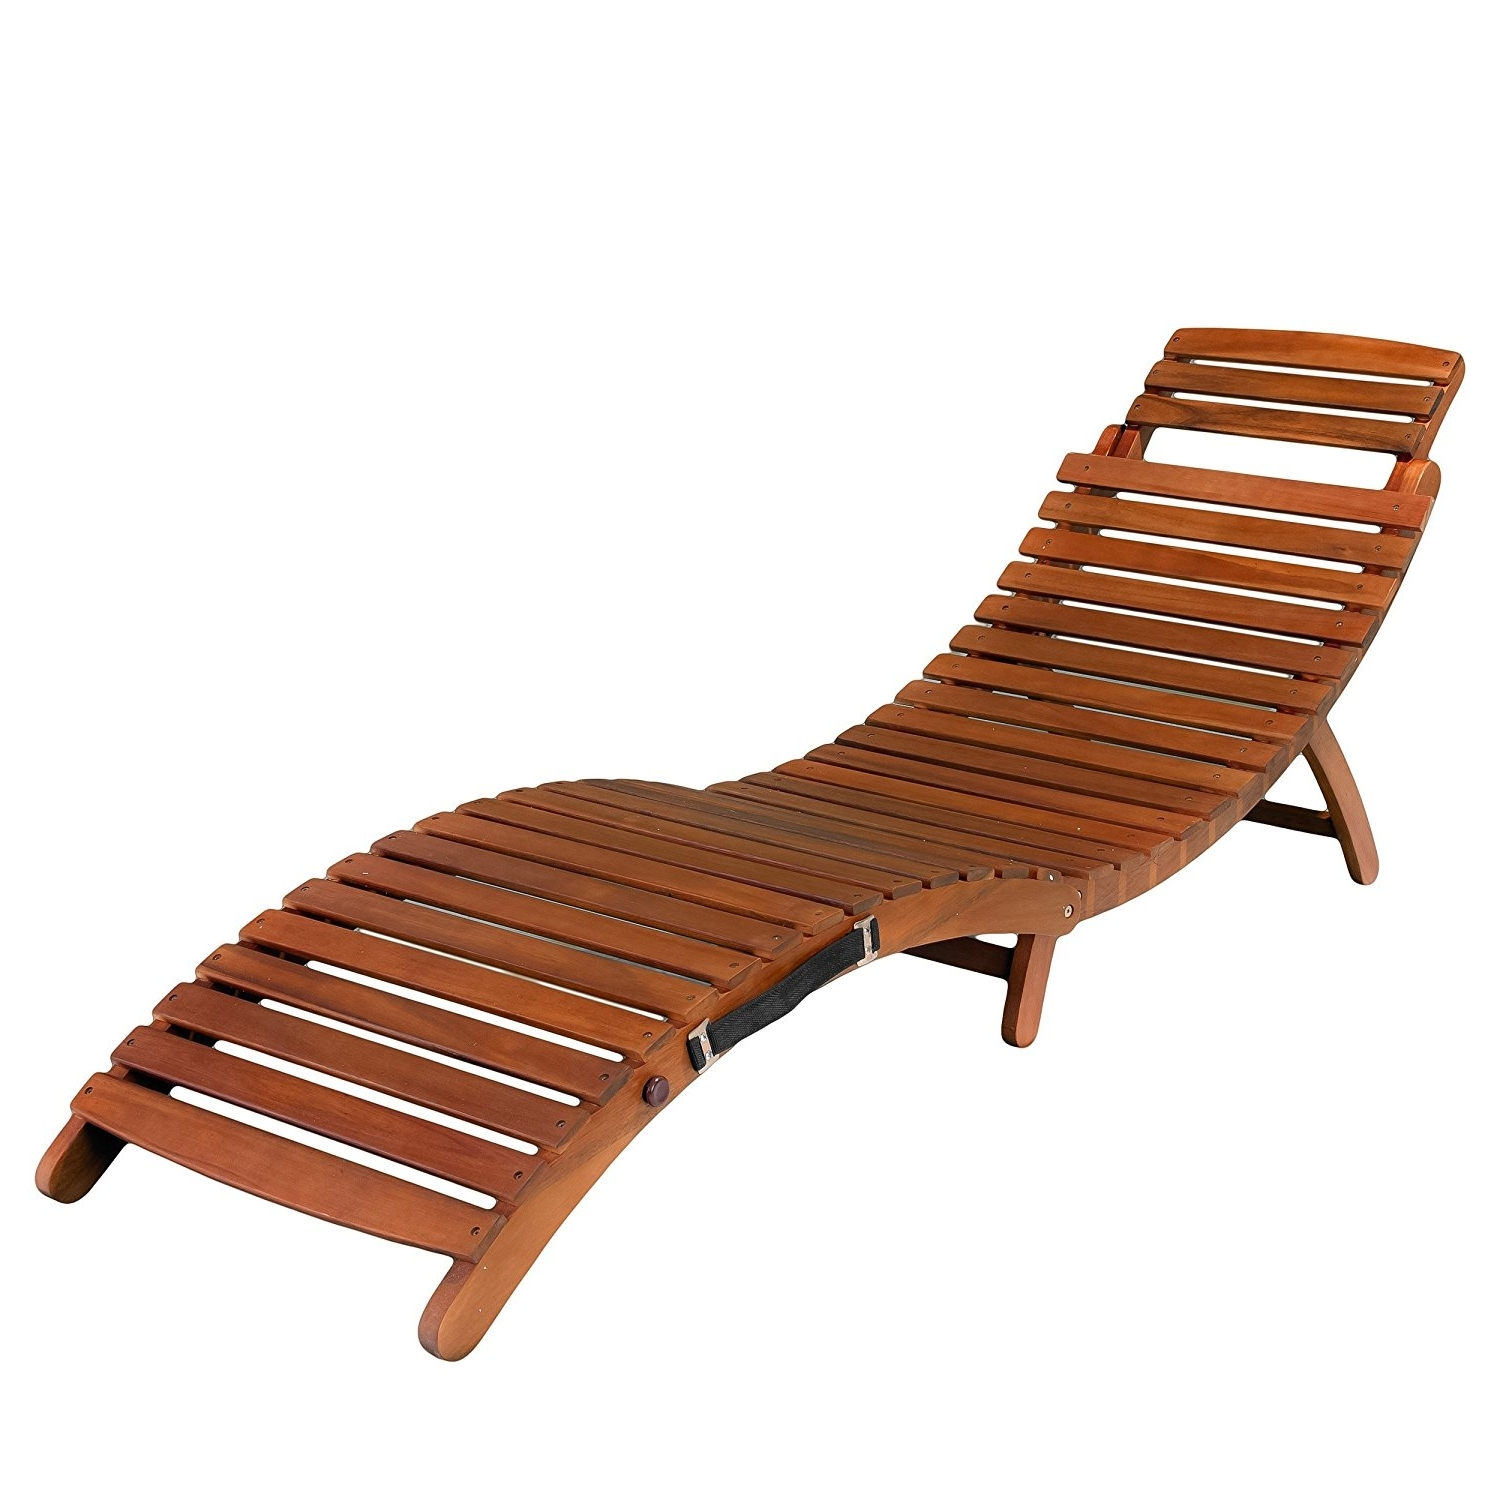 Wood Outdoor Chaise Lounges Intended For Most Recent Amazon: Best Selling Del Rio Wood Outdoor Chaise Lounge (View 10 of 15)